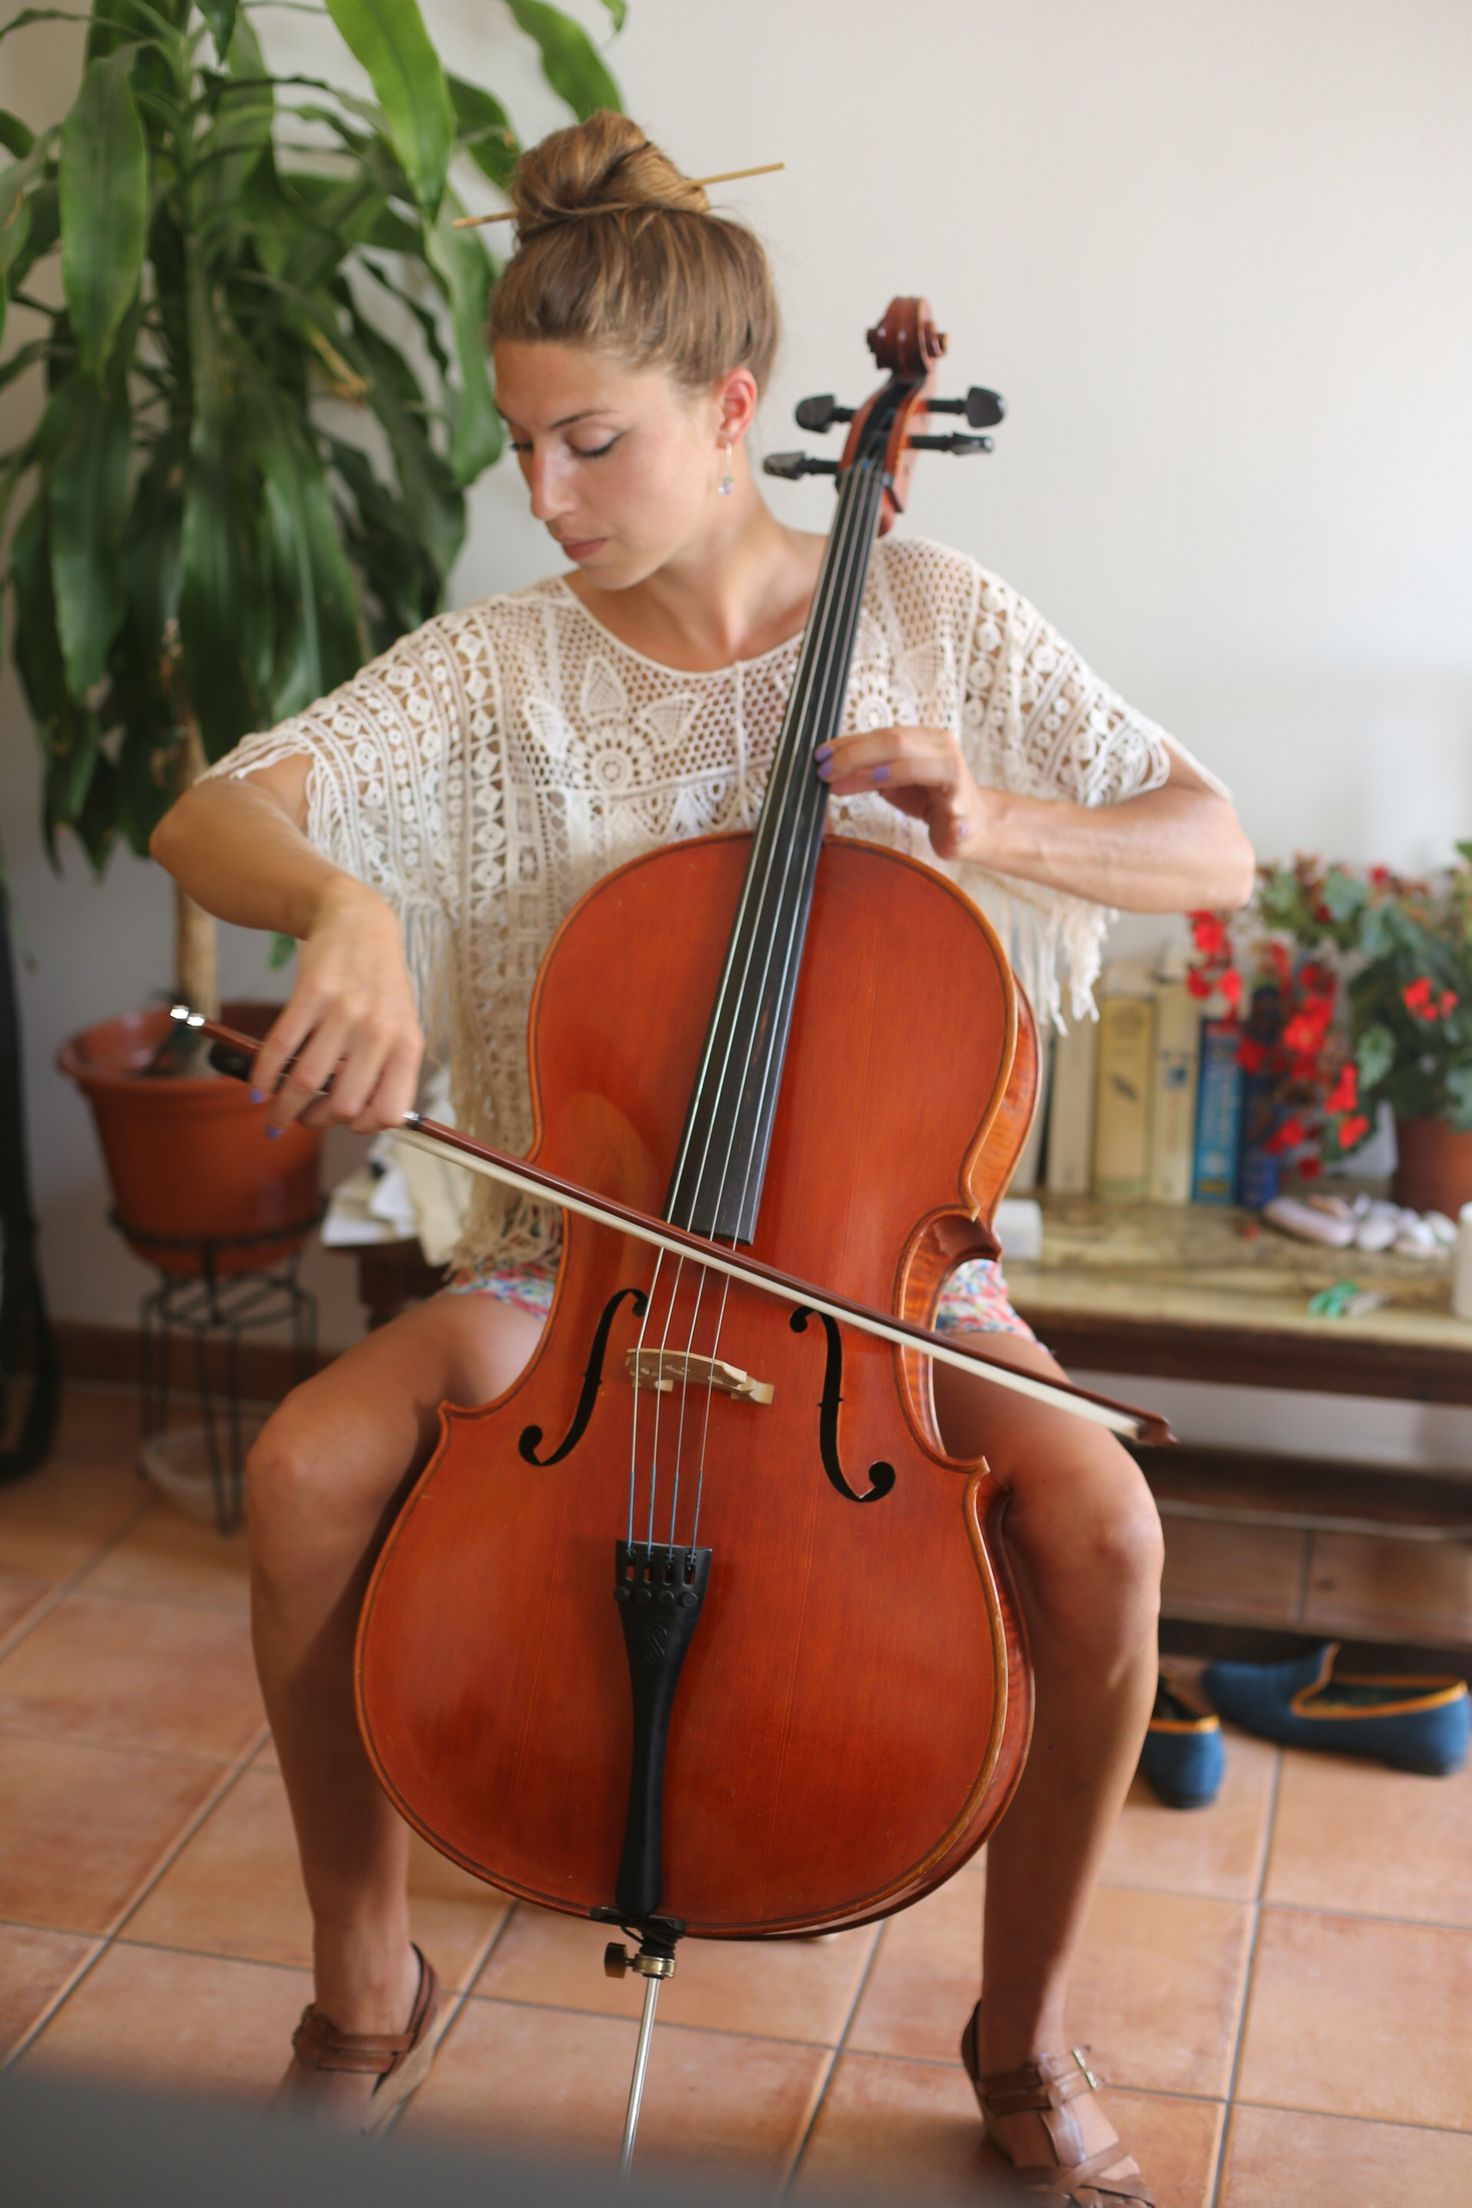 Pin By Grant On Cello Female Musicians Music Photography Musical Art